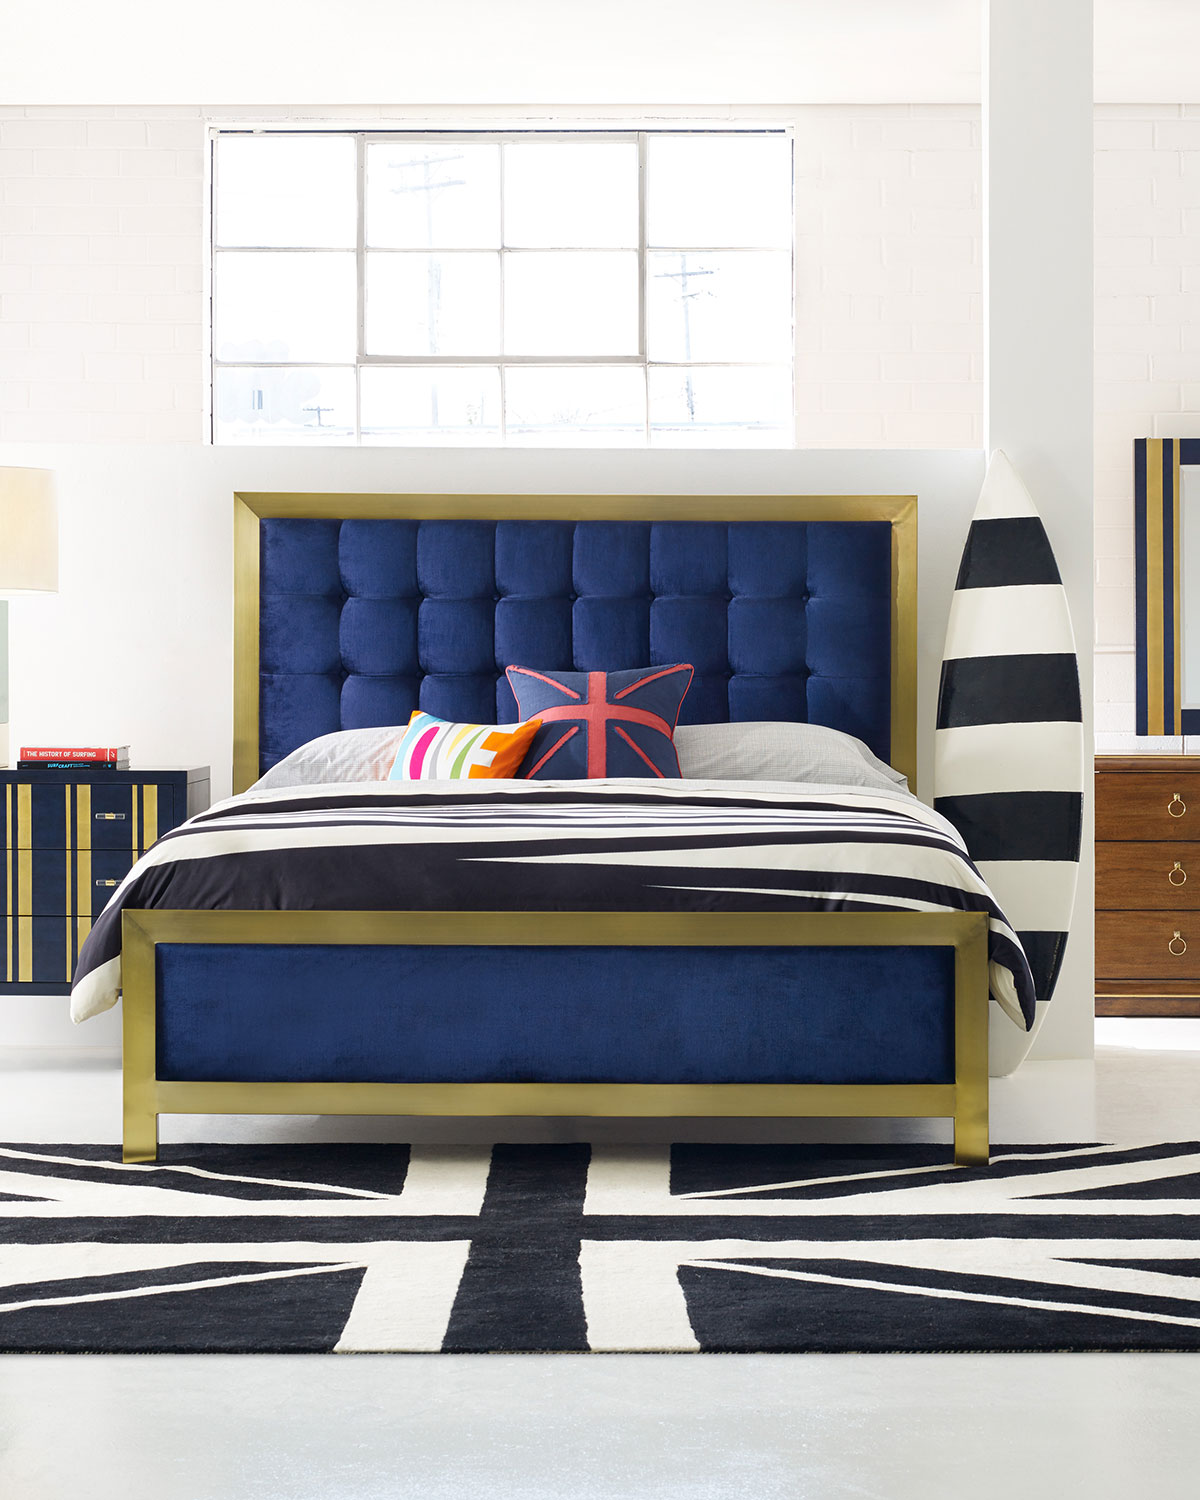 Cynthia Rowley For Hooker Furniture Balthazar Tufted California King